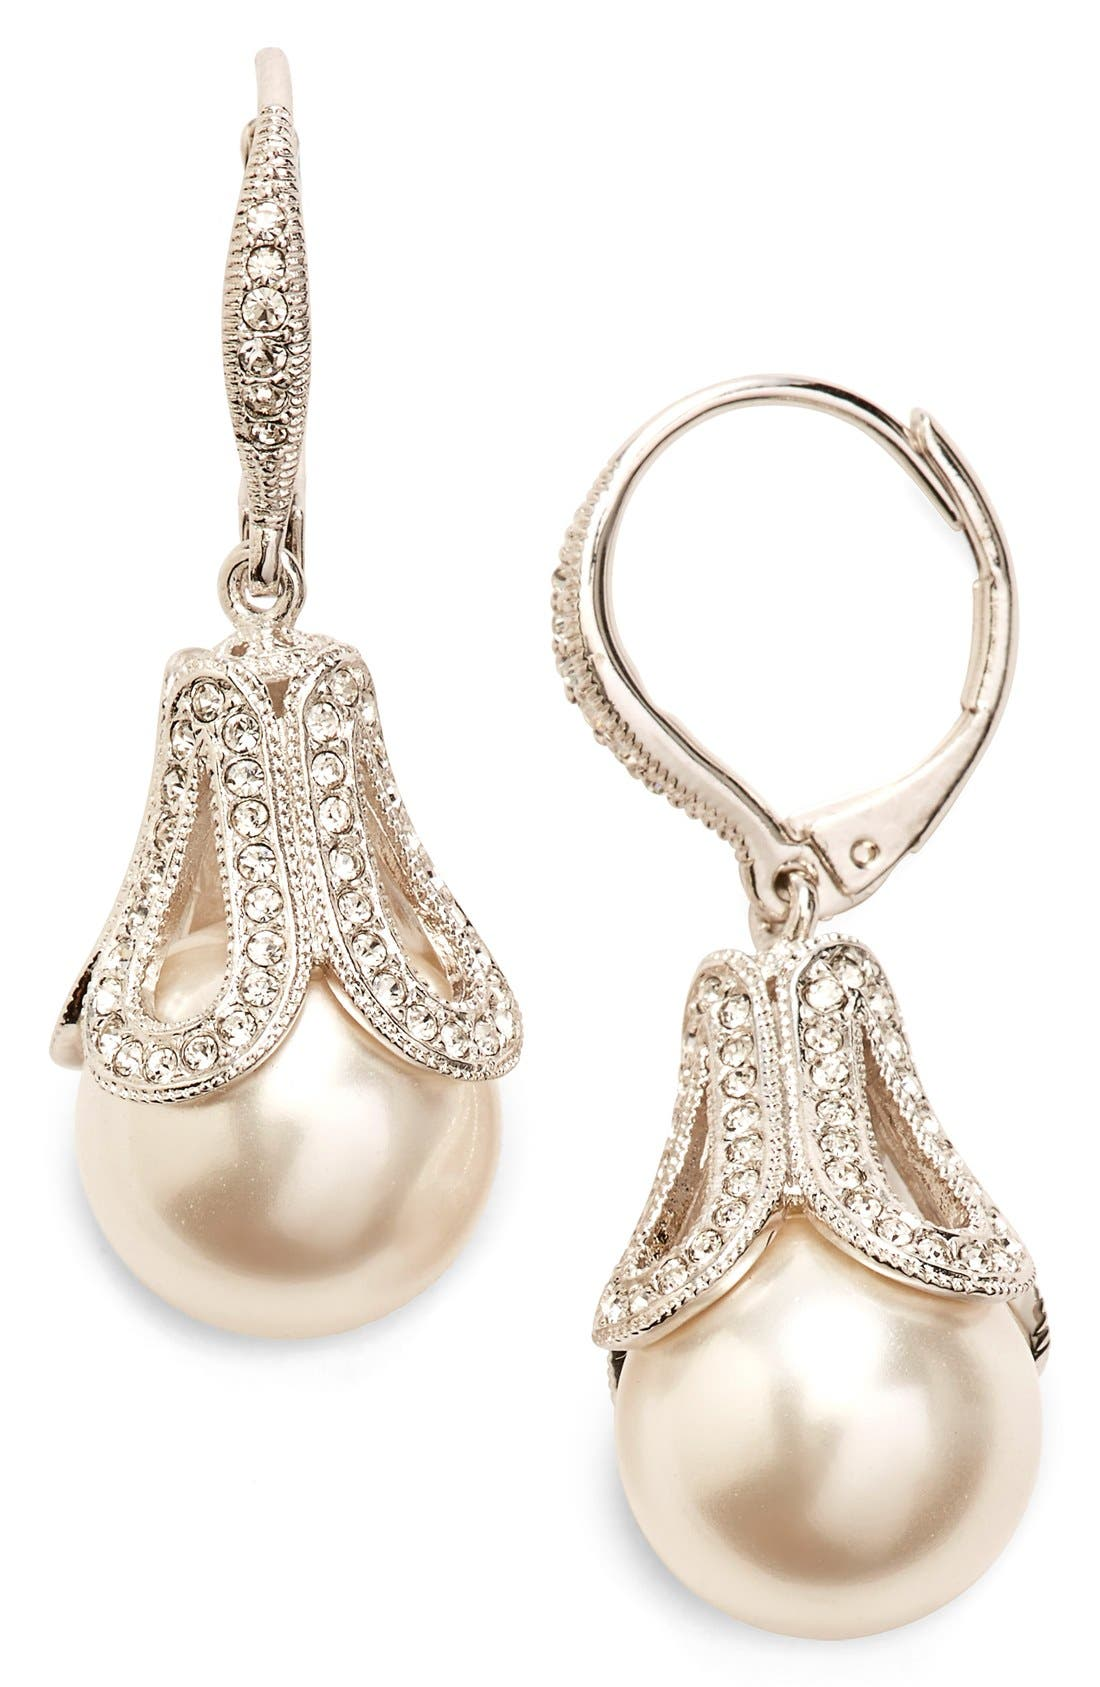 Imitation Pearl Drop Earrings,                             Main thumbnail 1, color,                             IVORY